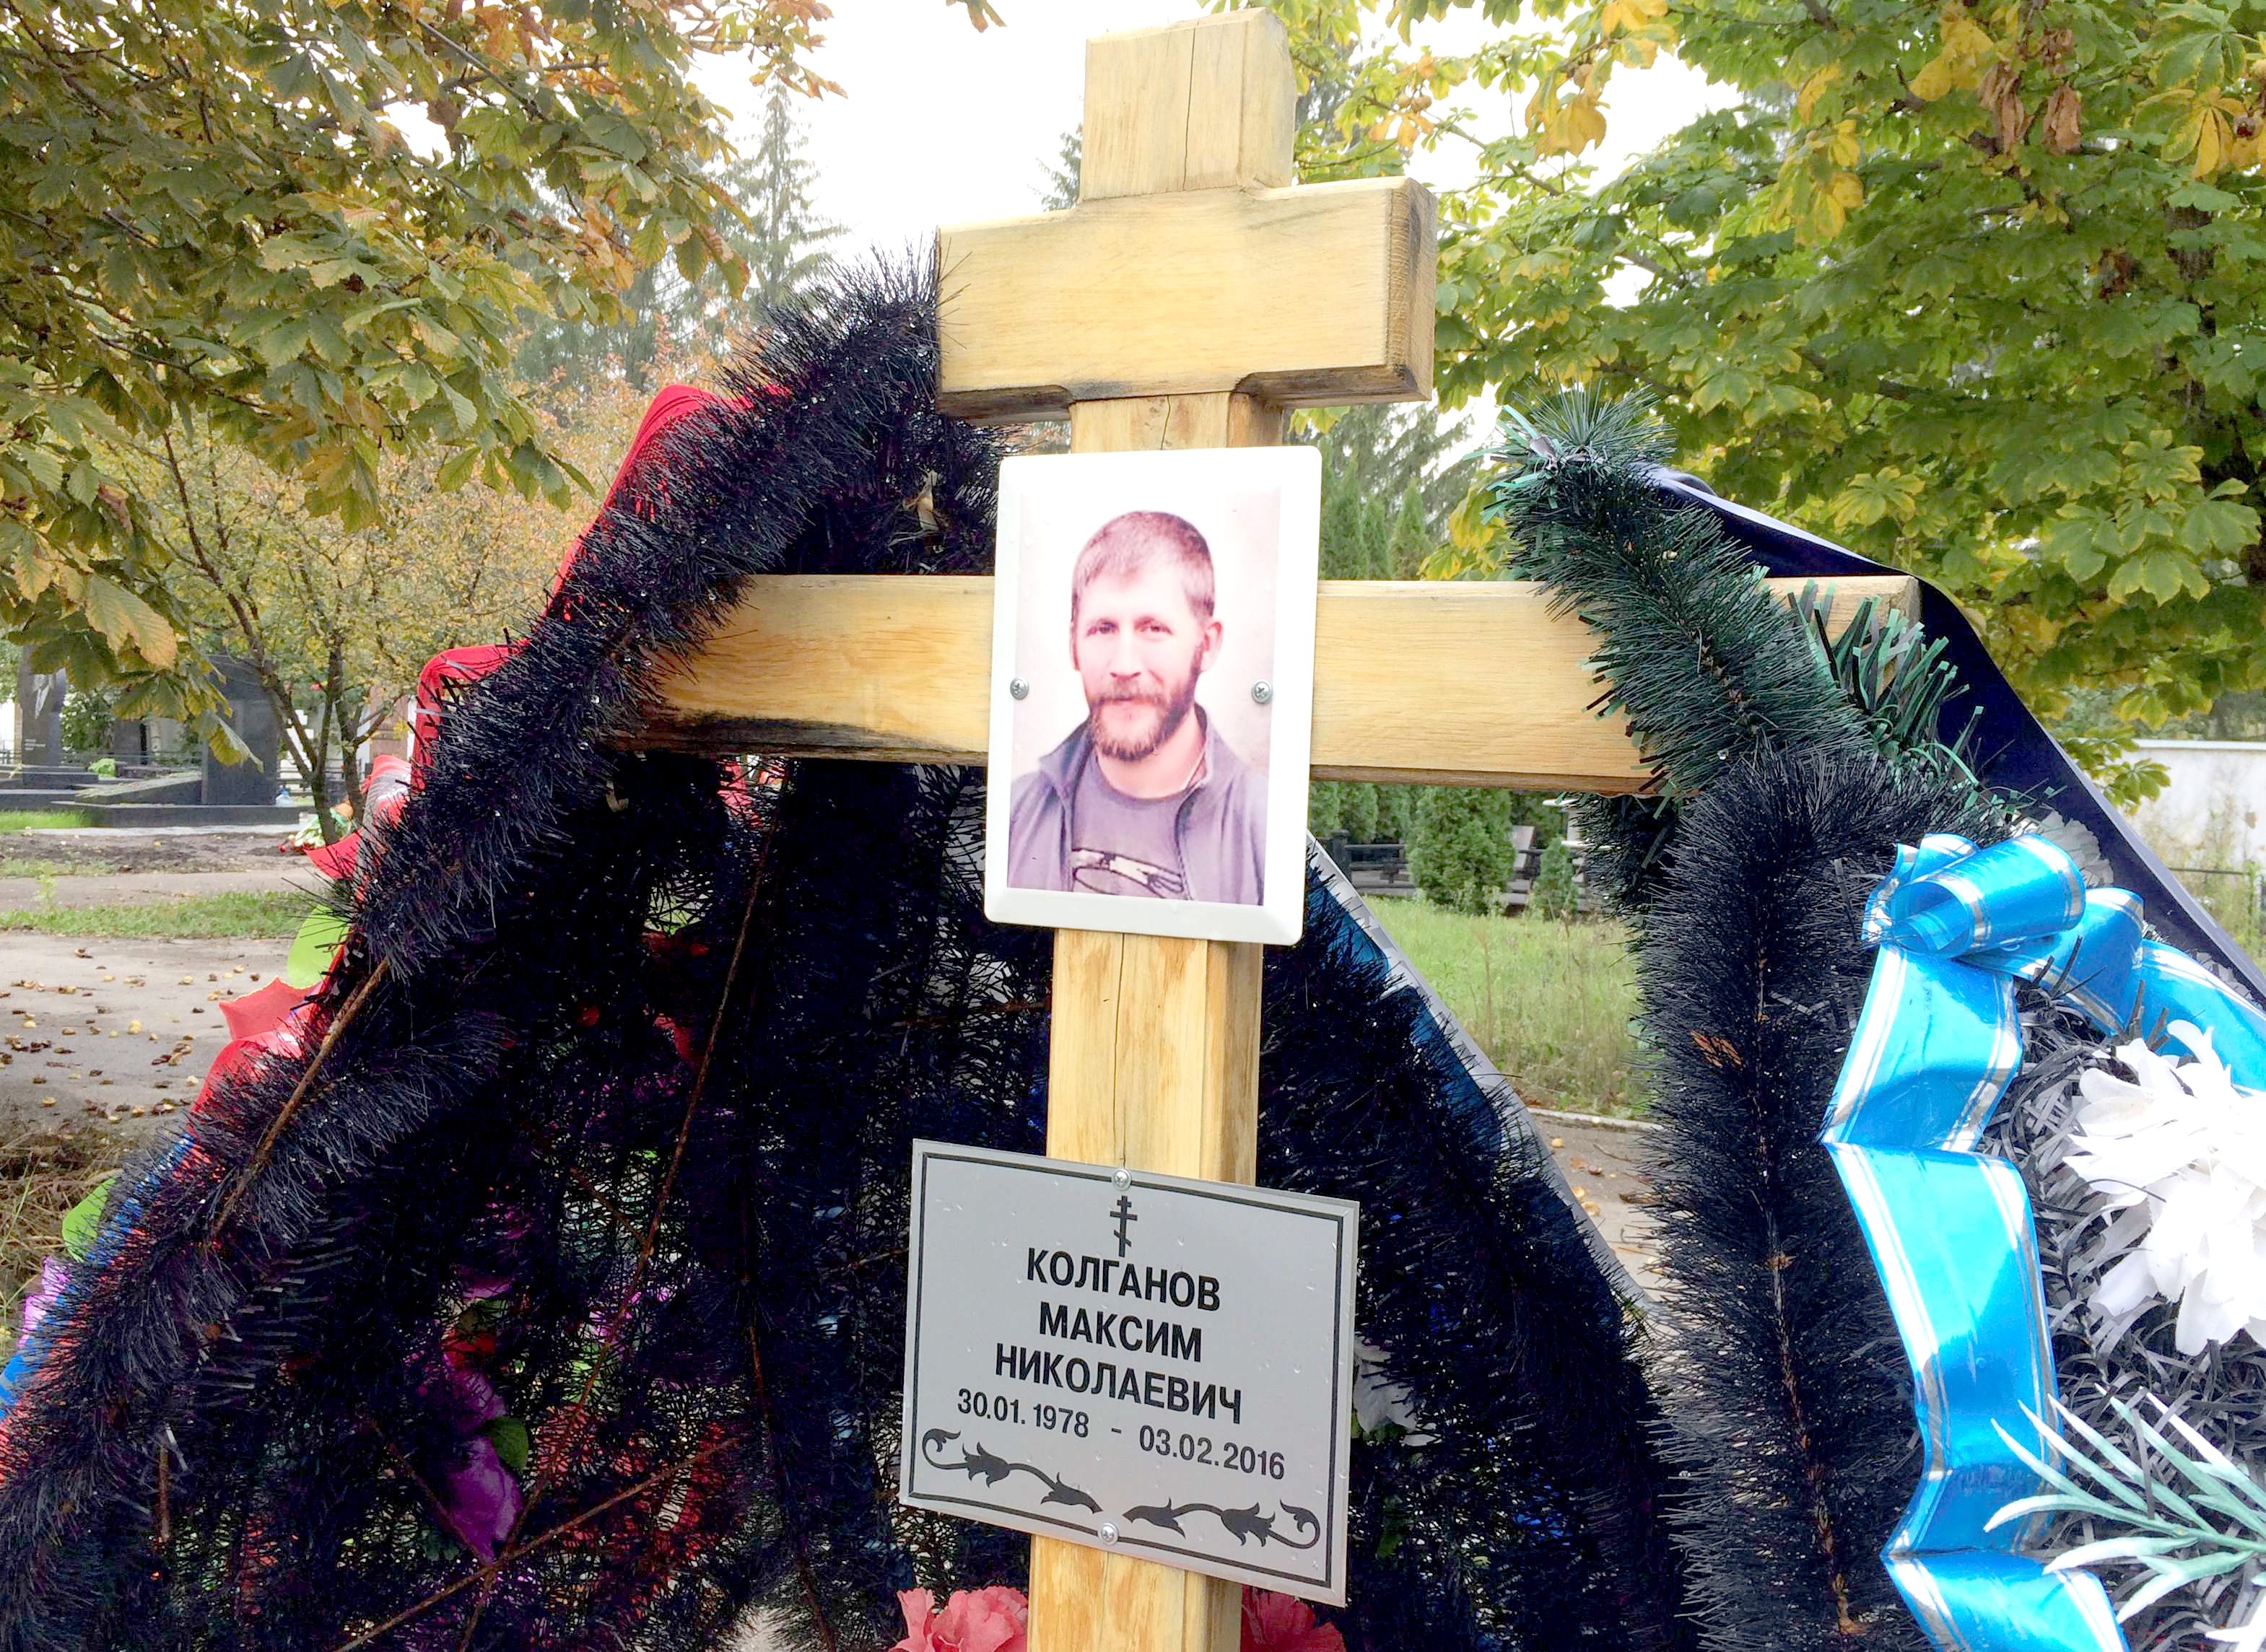 A portrait of a Russian contractor who was killed in combat in Syria is seen at his grave in his home town of Togliatti in Russia. (Reuters)